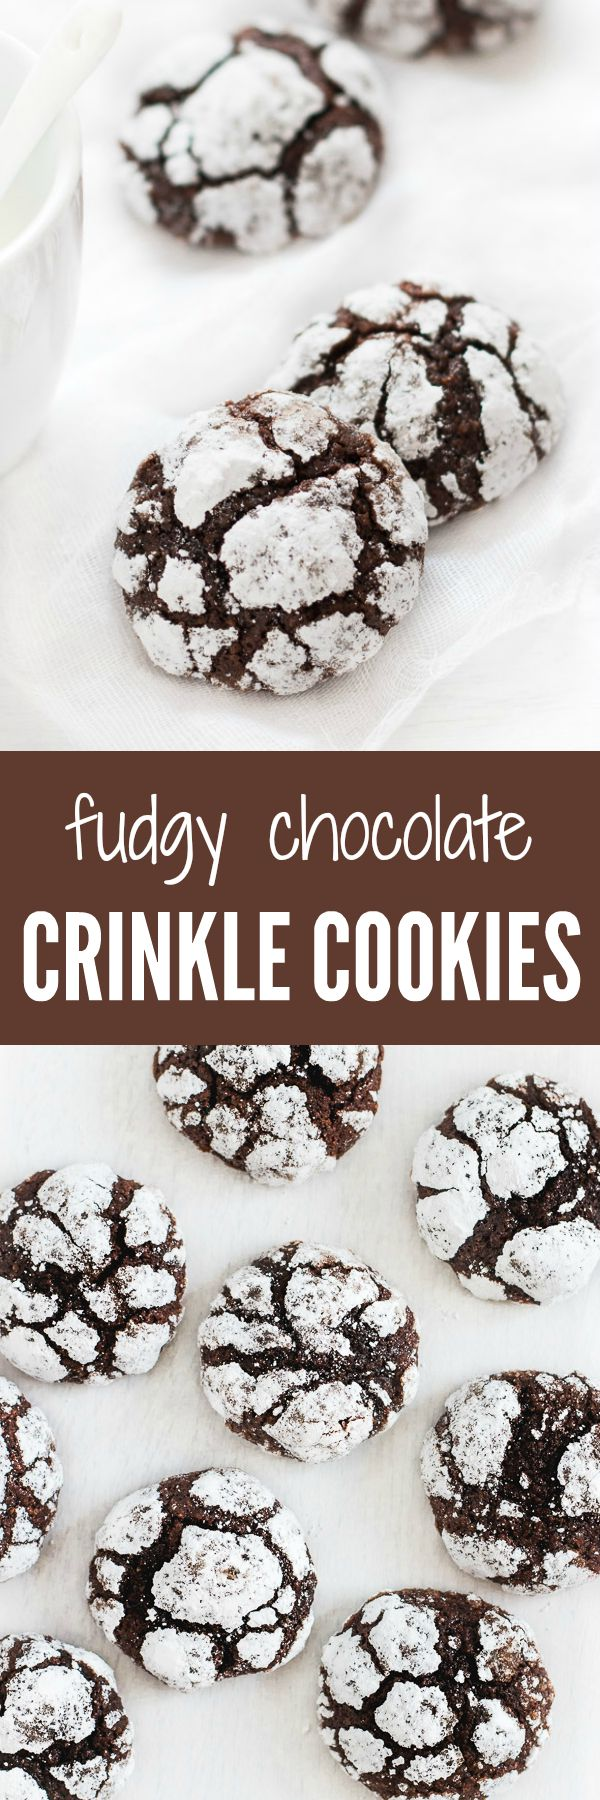 Crunchy on the outside and super fudgy on the inside, these crinkle cookies are a chocolate lover's dream. | prettysimplesweet.com